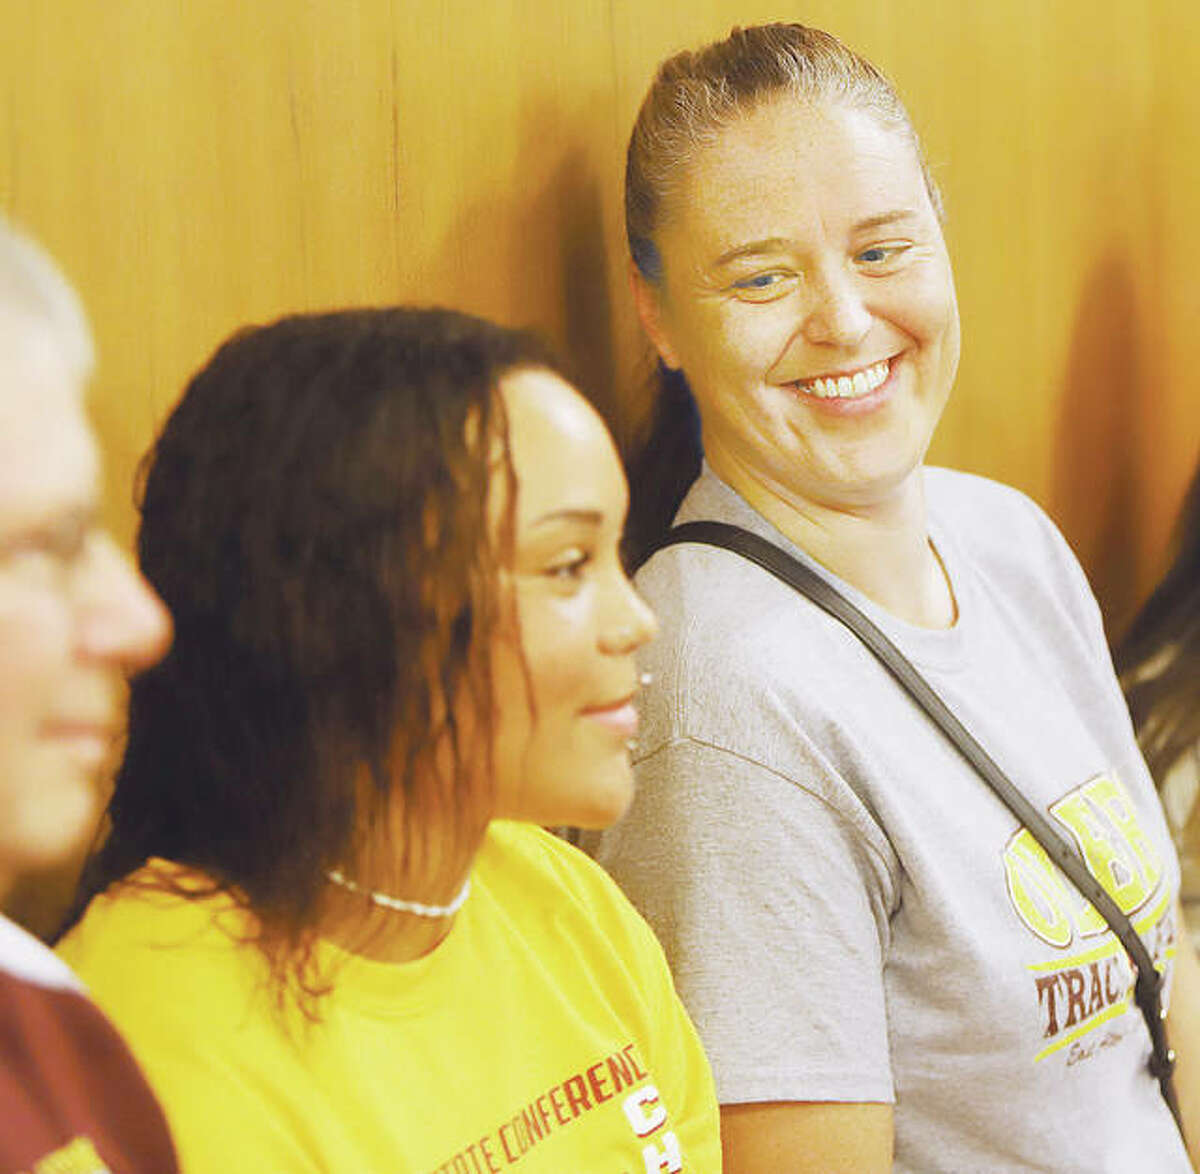 Jayden Ulrich's mother, Jeniffer, right, beams with pride as her daughter's accomplishments are read in a proclamation at the East Alton Village Board meeting Tuesday night.